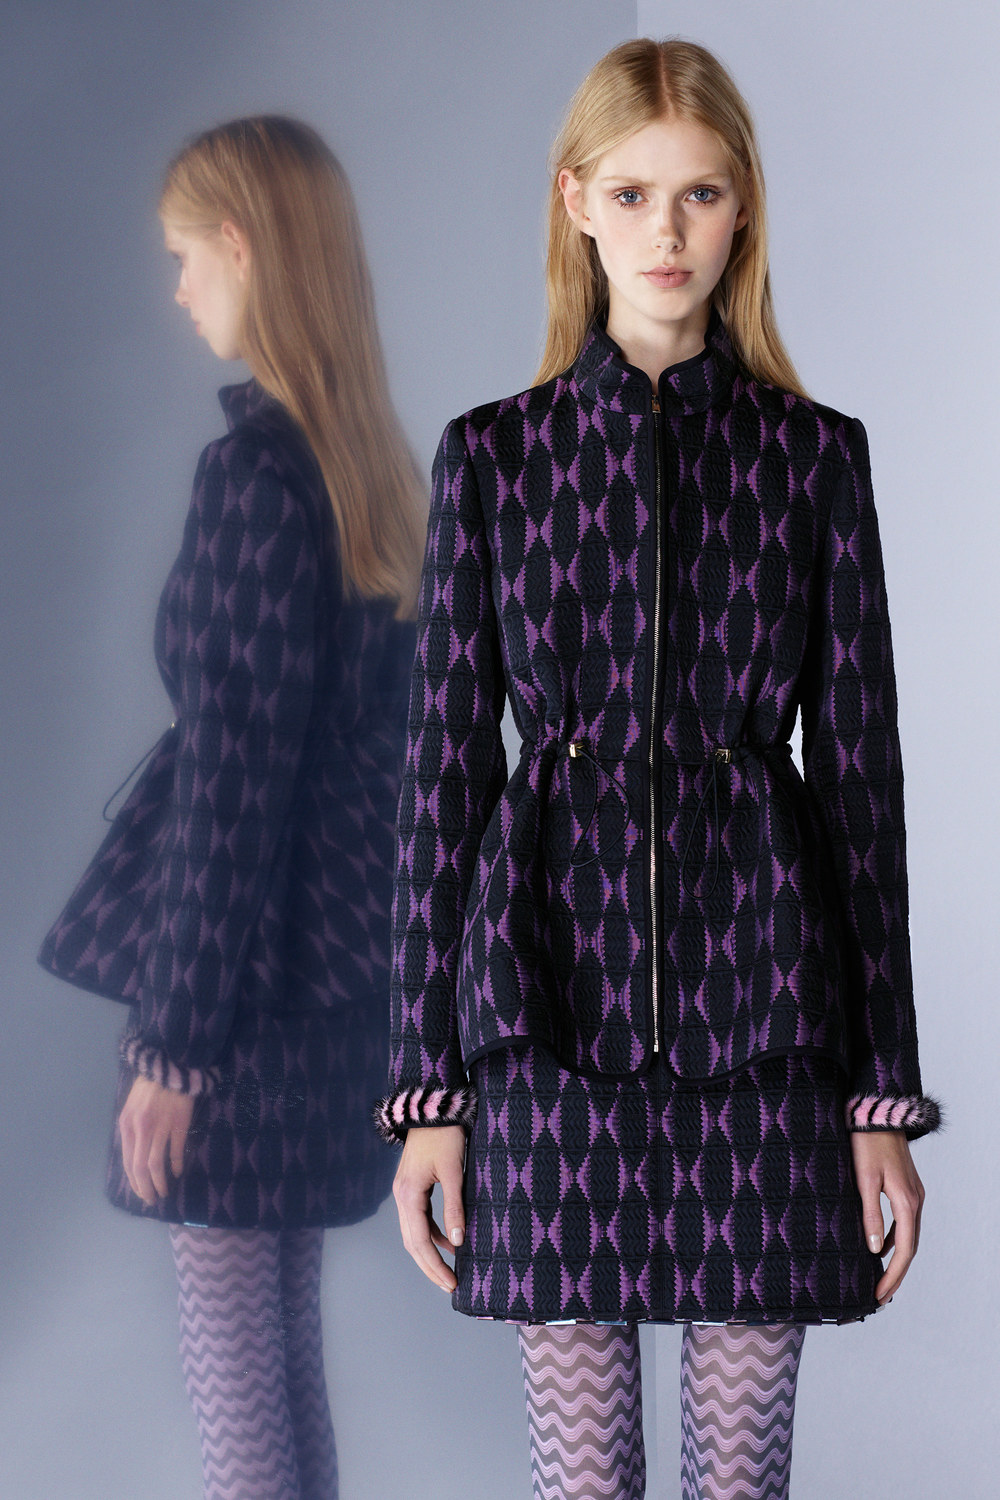 ROSE & IVY Journal Prefall Mary Katrantzou